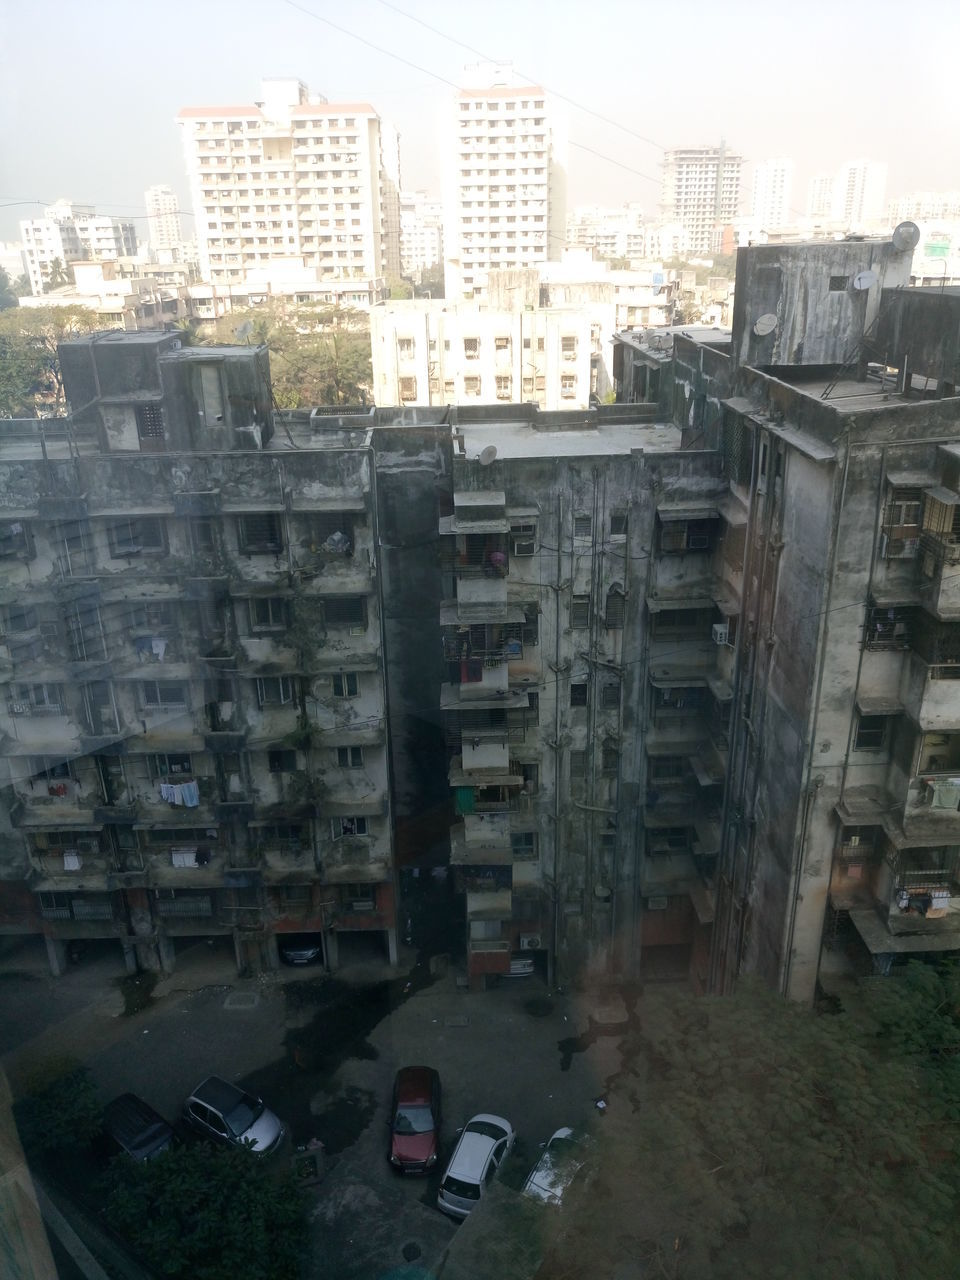 architecture, building exterior, city, built structure, street, skyscraper, no people, cityscape, outdoors, day, apartment